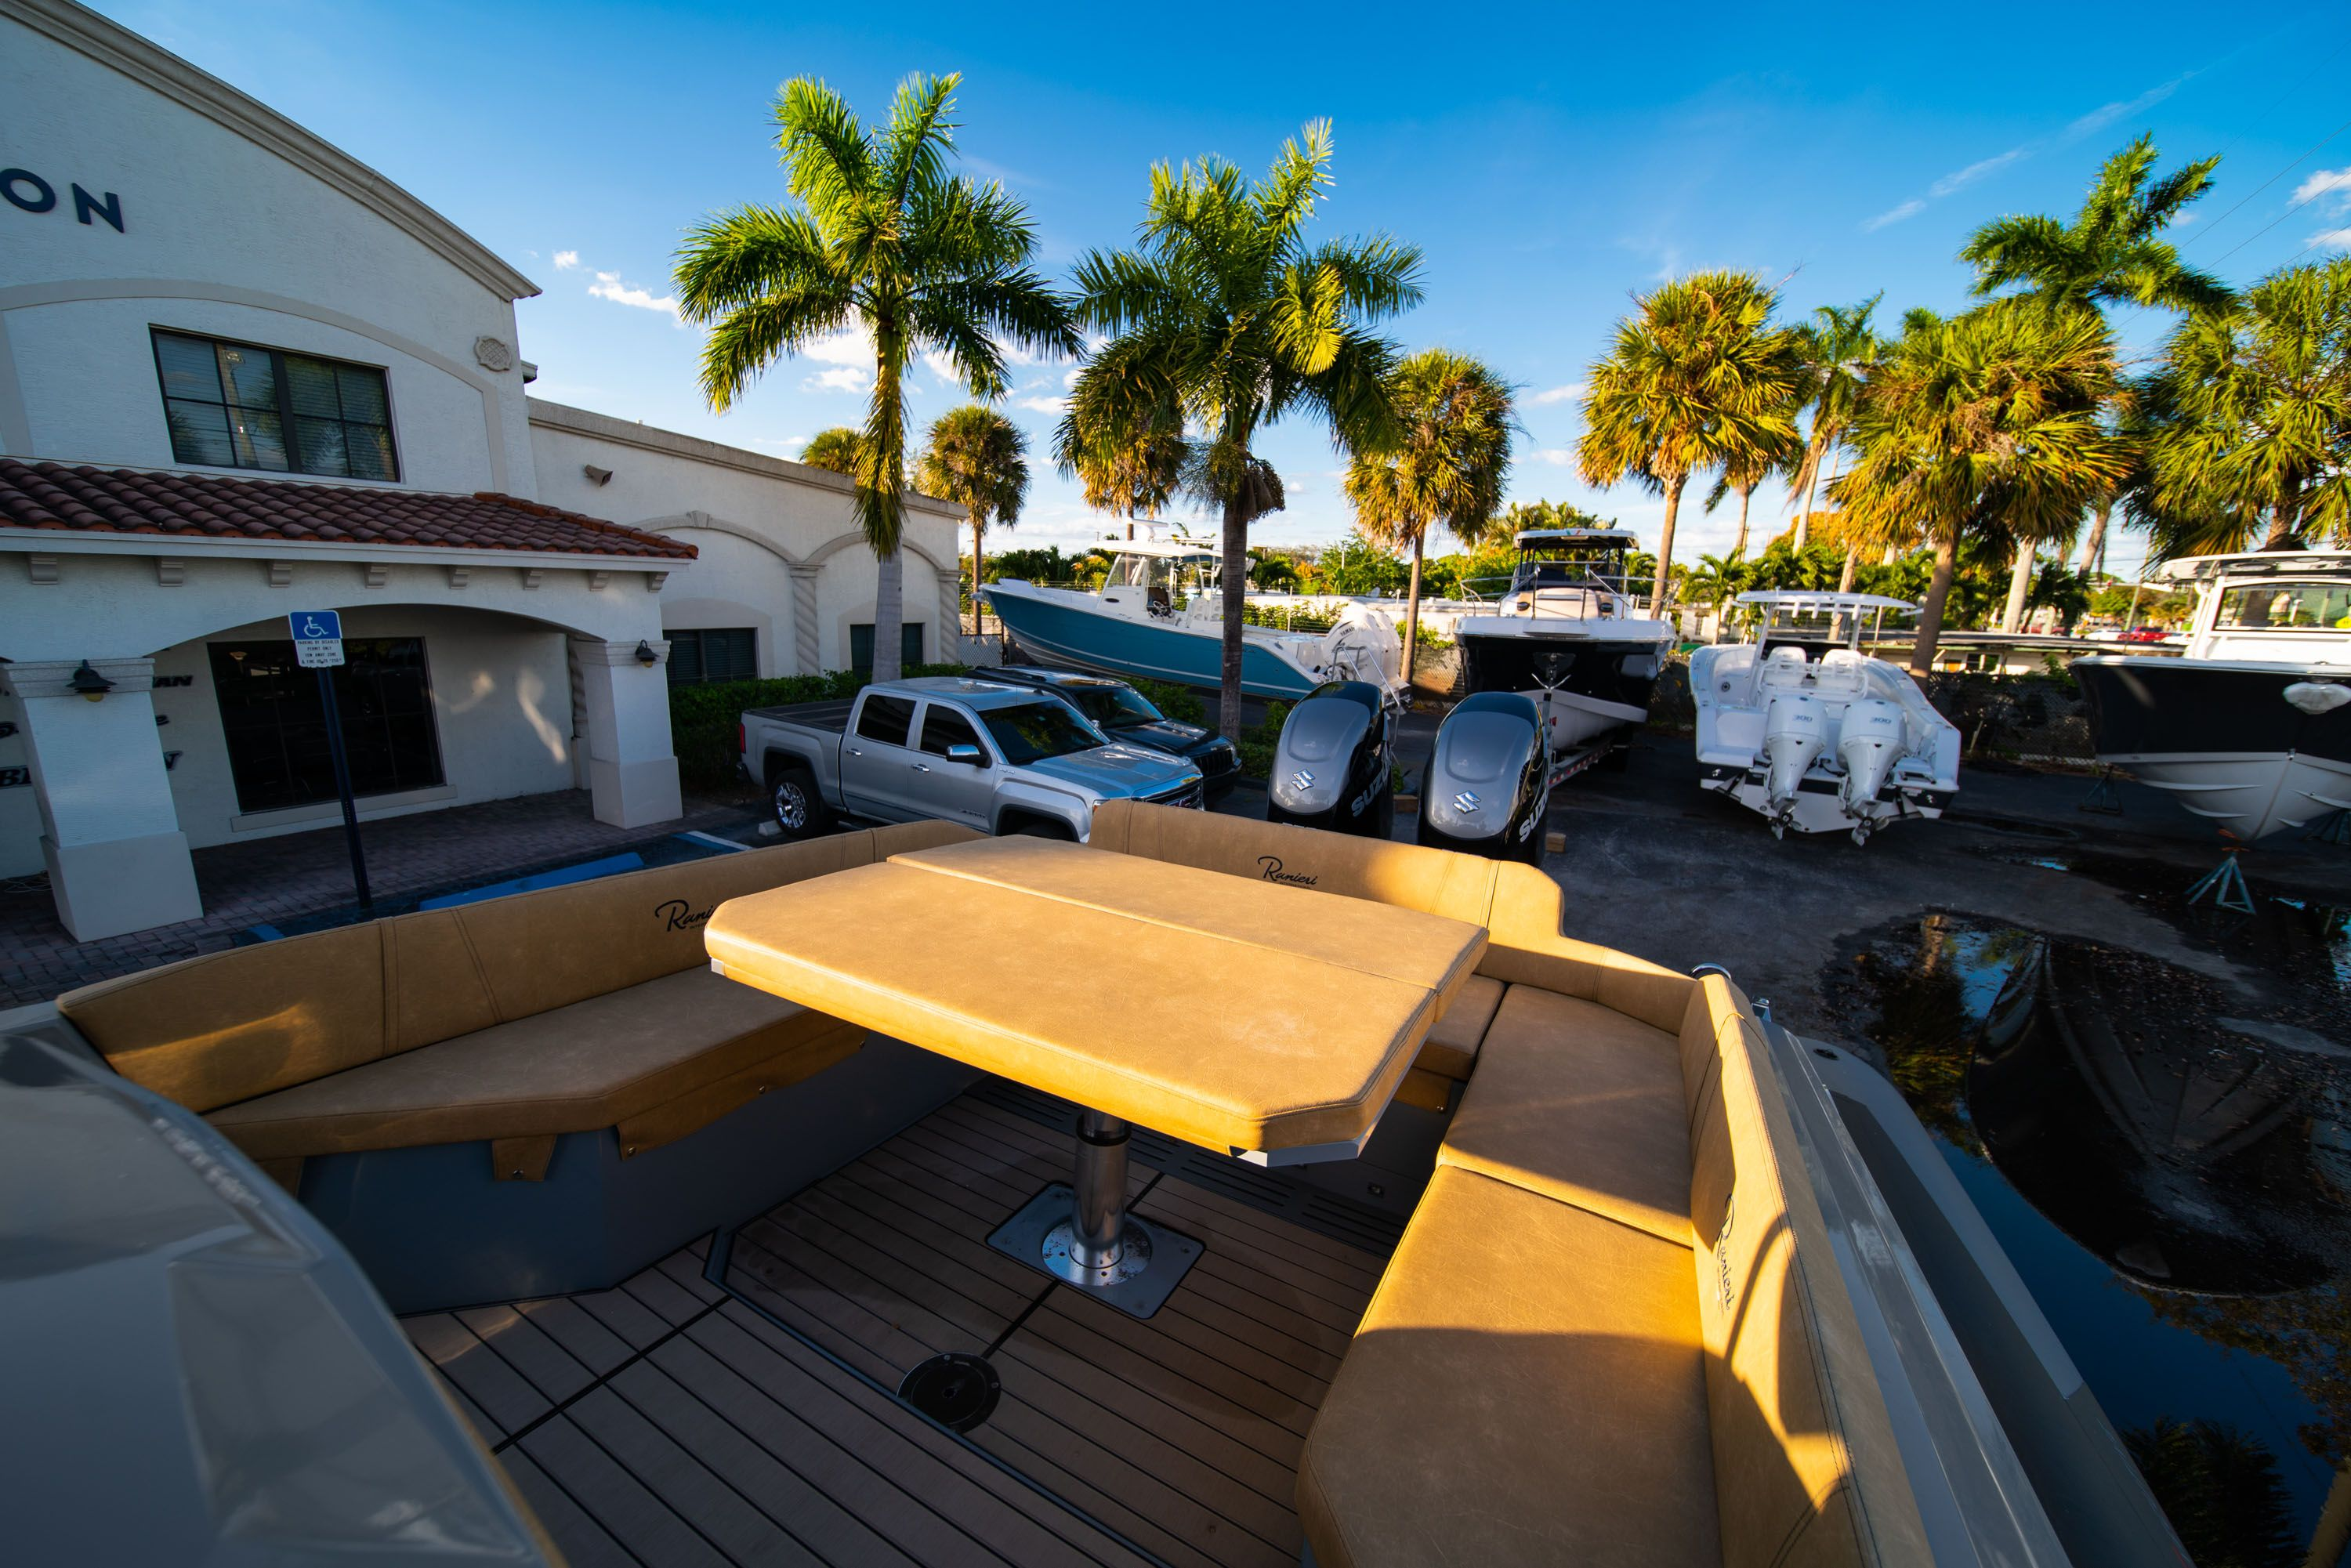 Thumbnail 17 for New 2019 Ranieri Cayman 38 Executive boat for sale in West Palm Beach, FL